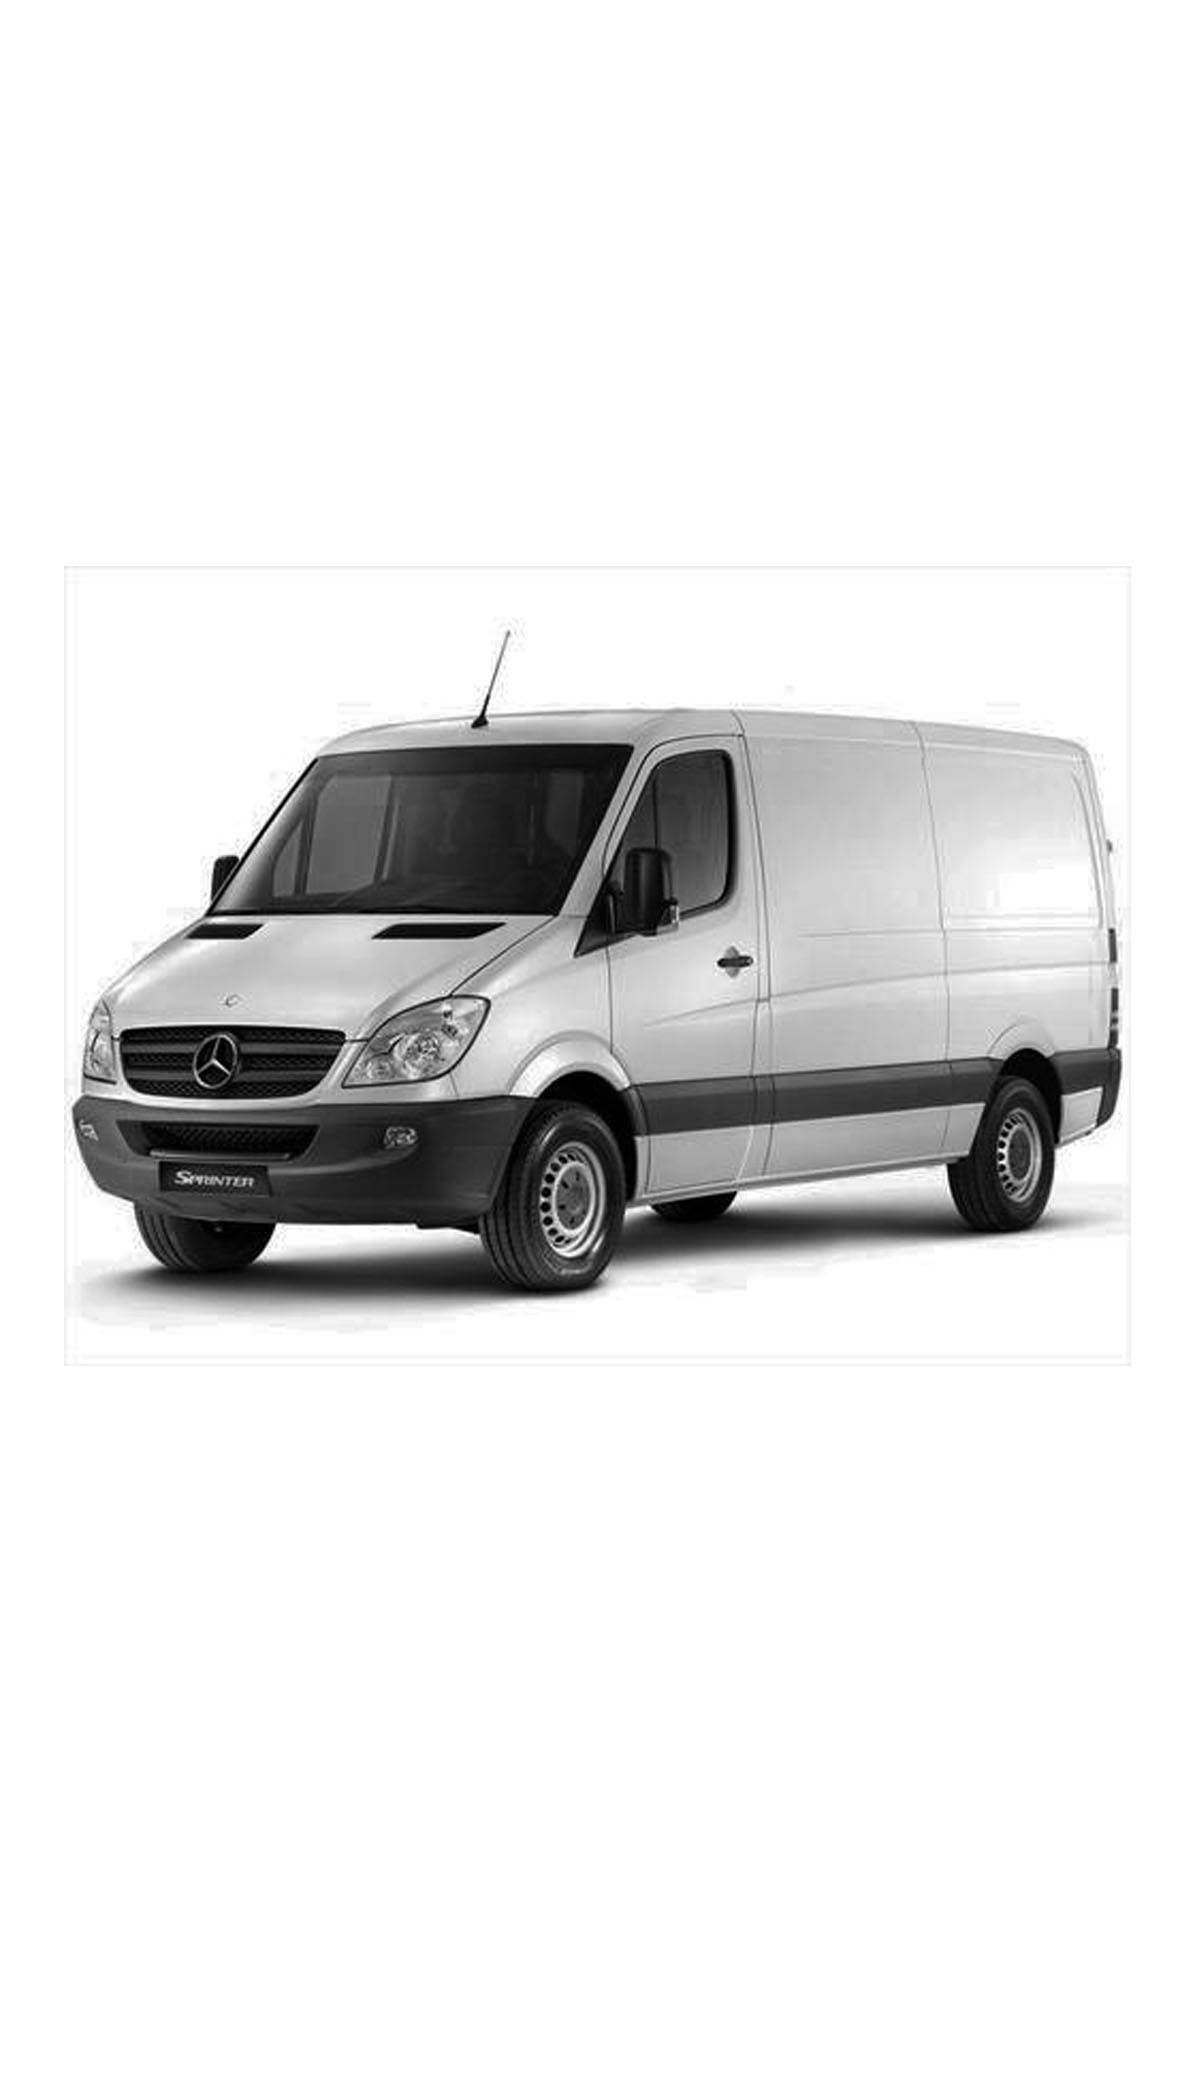 DUST SPRINTER VAN PACKAGE -